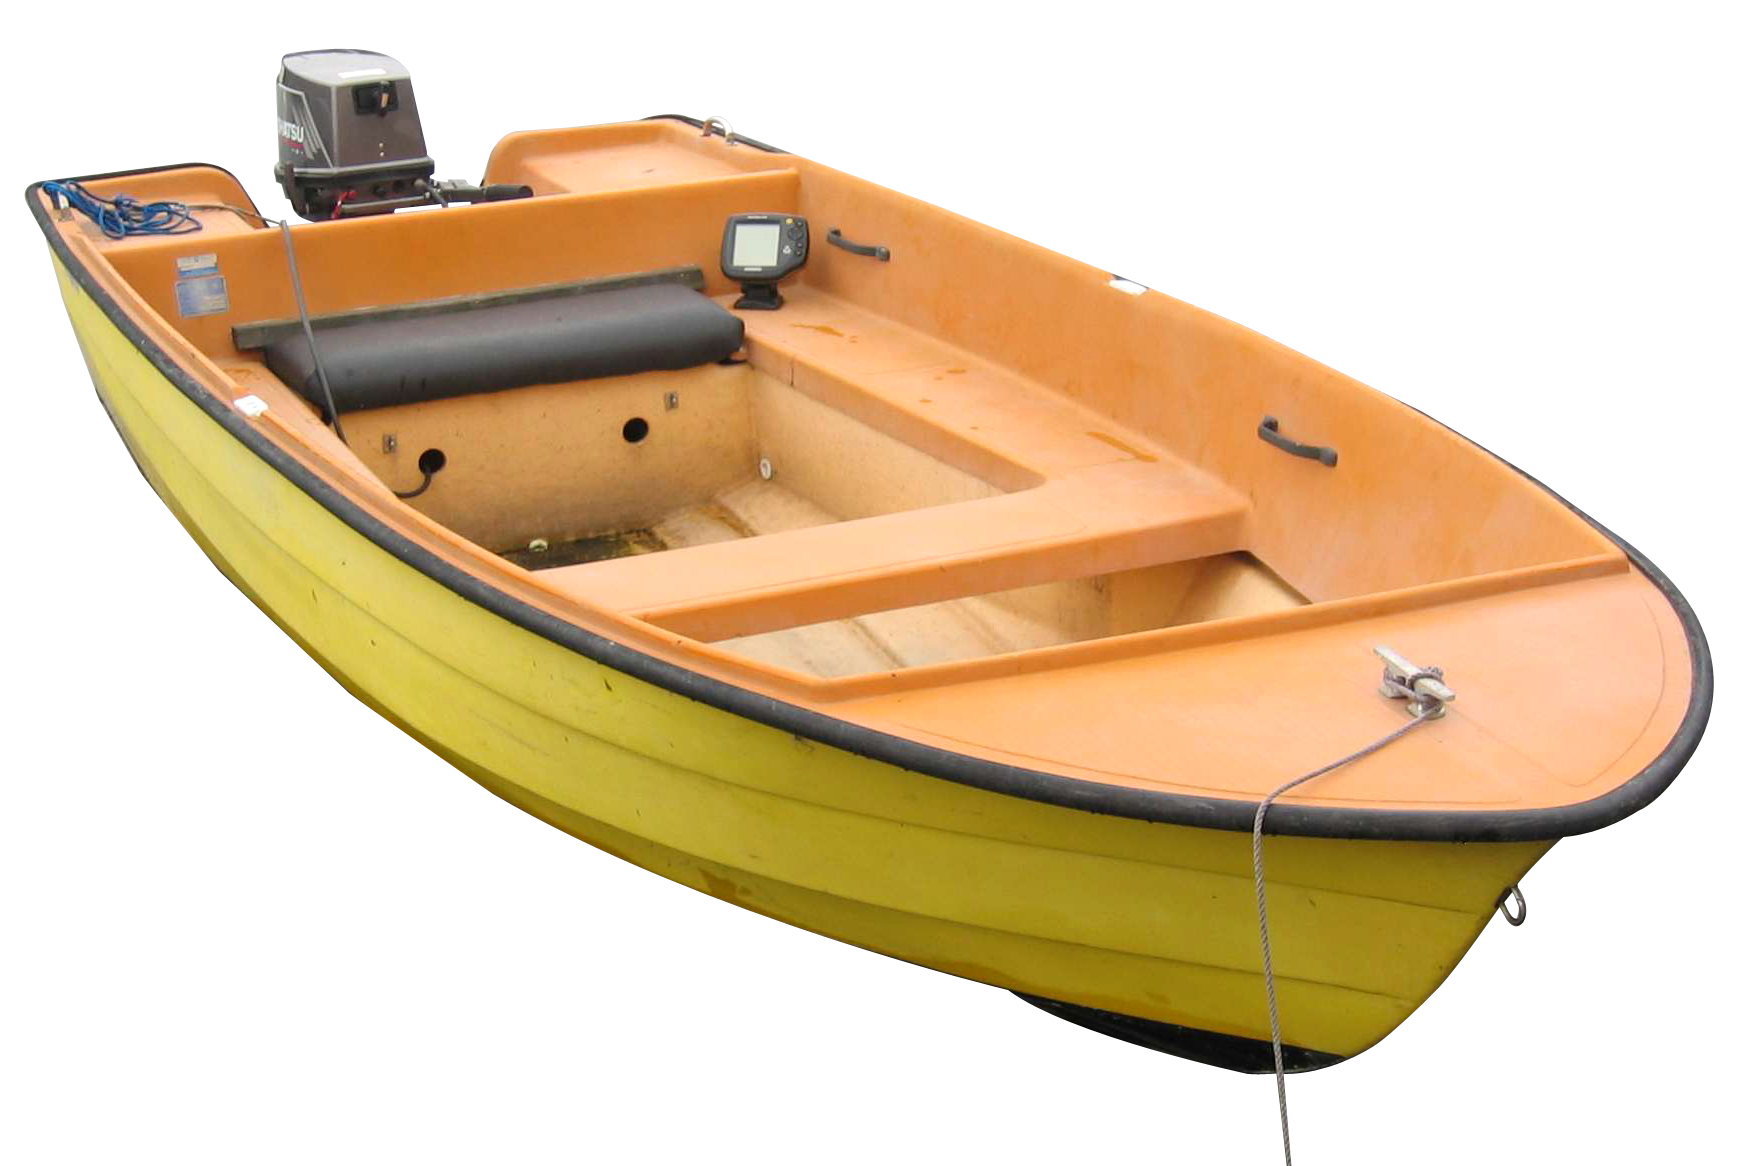 Yacht png shipe. Boat images free download